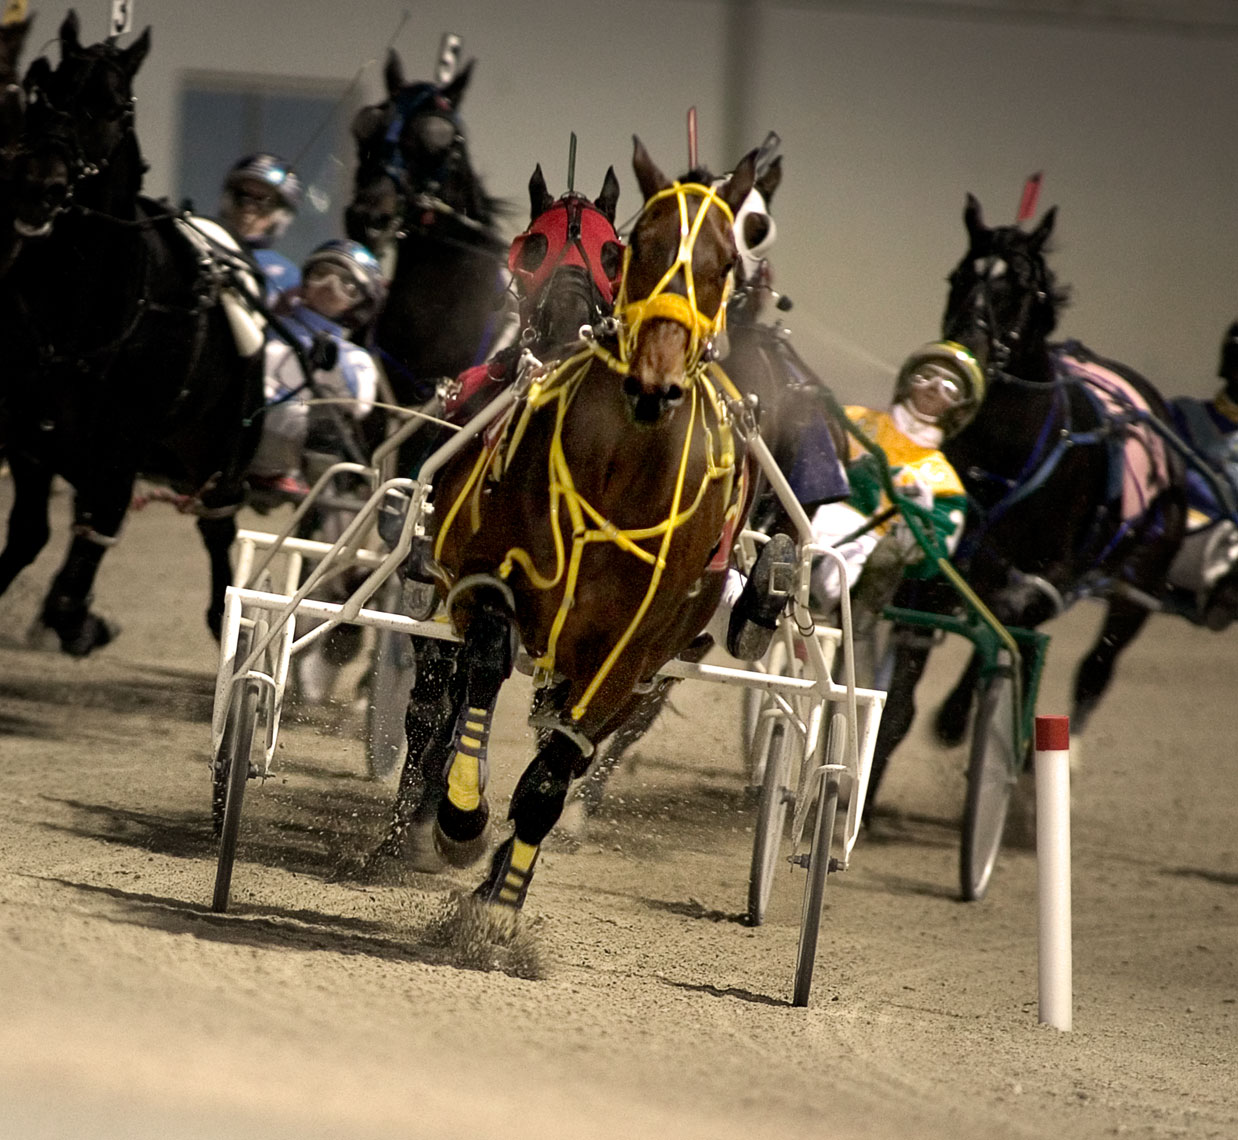 Harness Racing_008| Robert Randall Advertising Photographer, Commercial Photographer, CGI, Portrait, and Lifestyle Photography